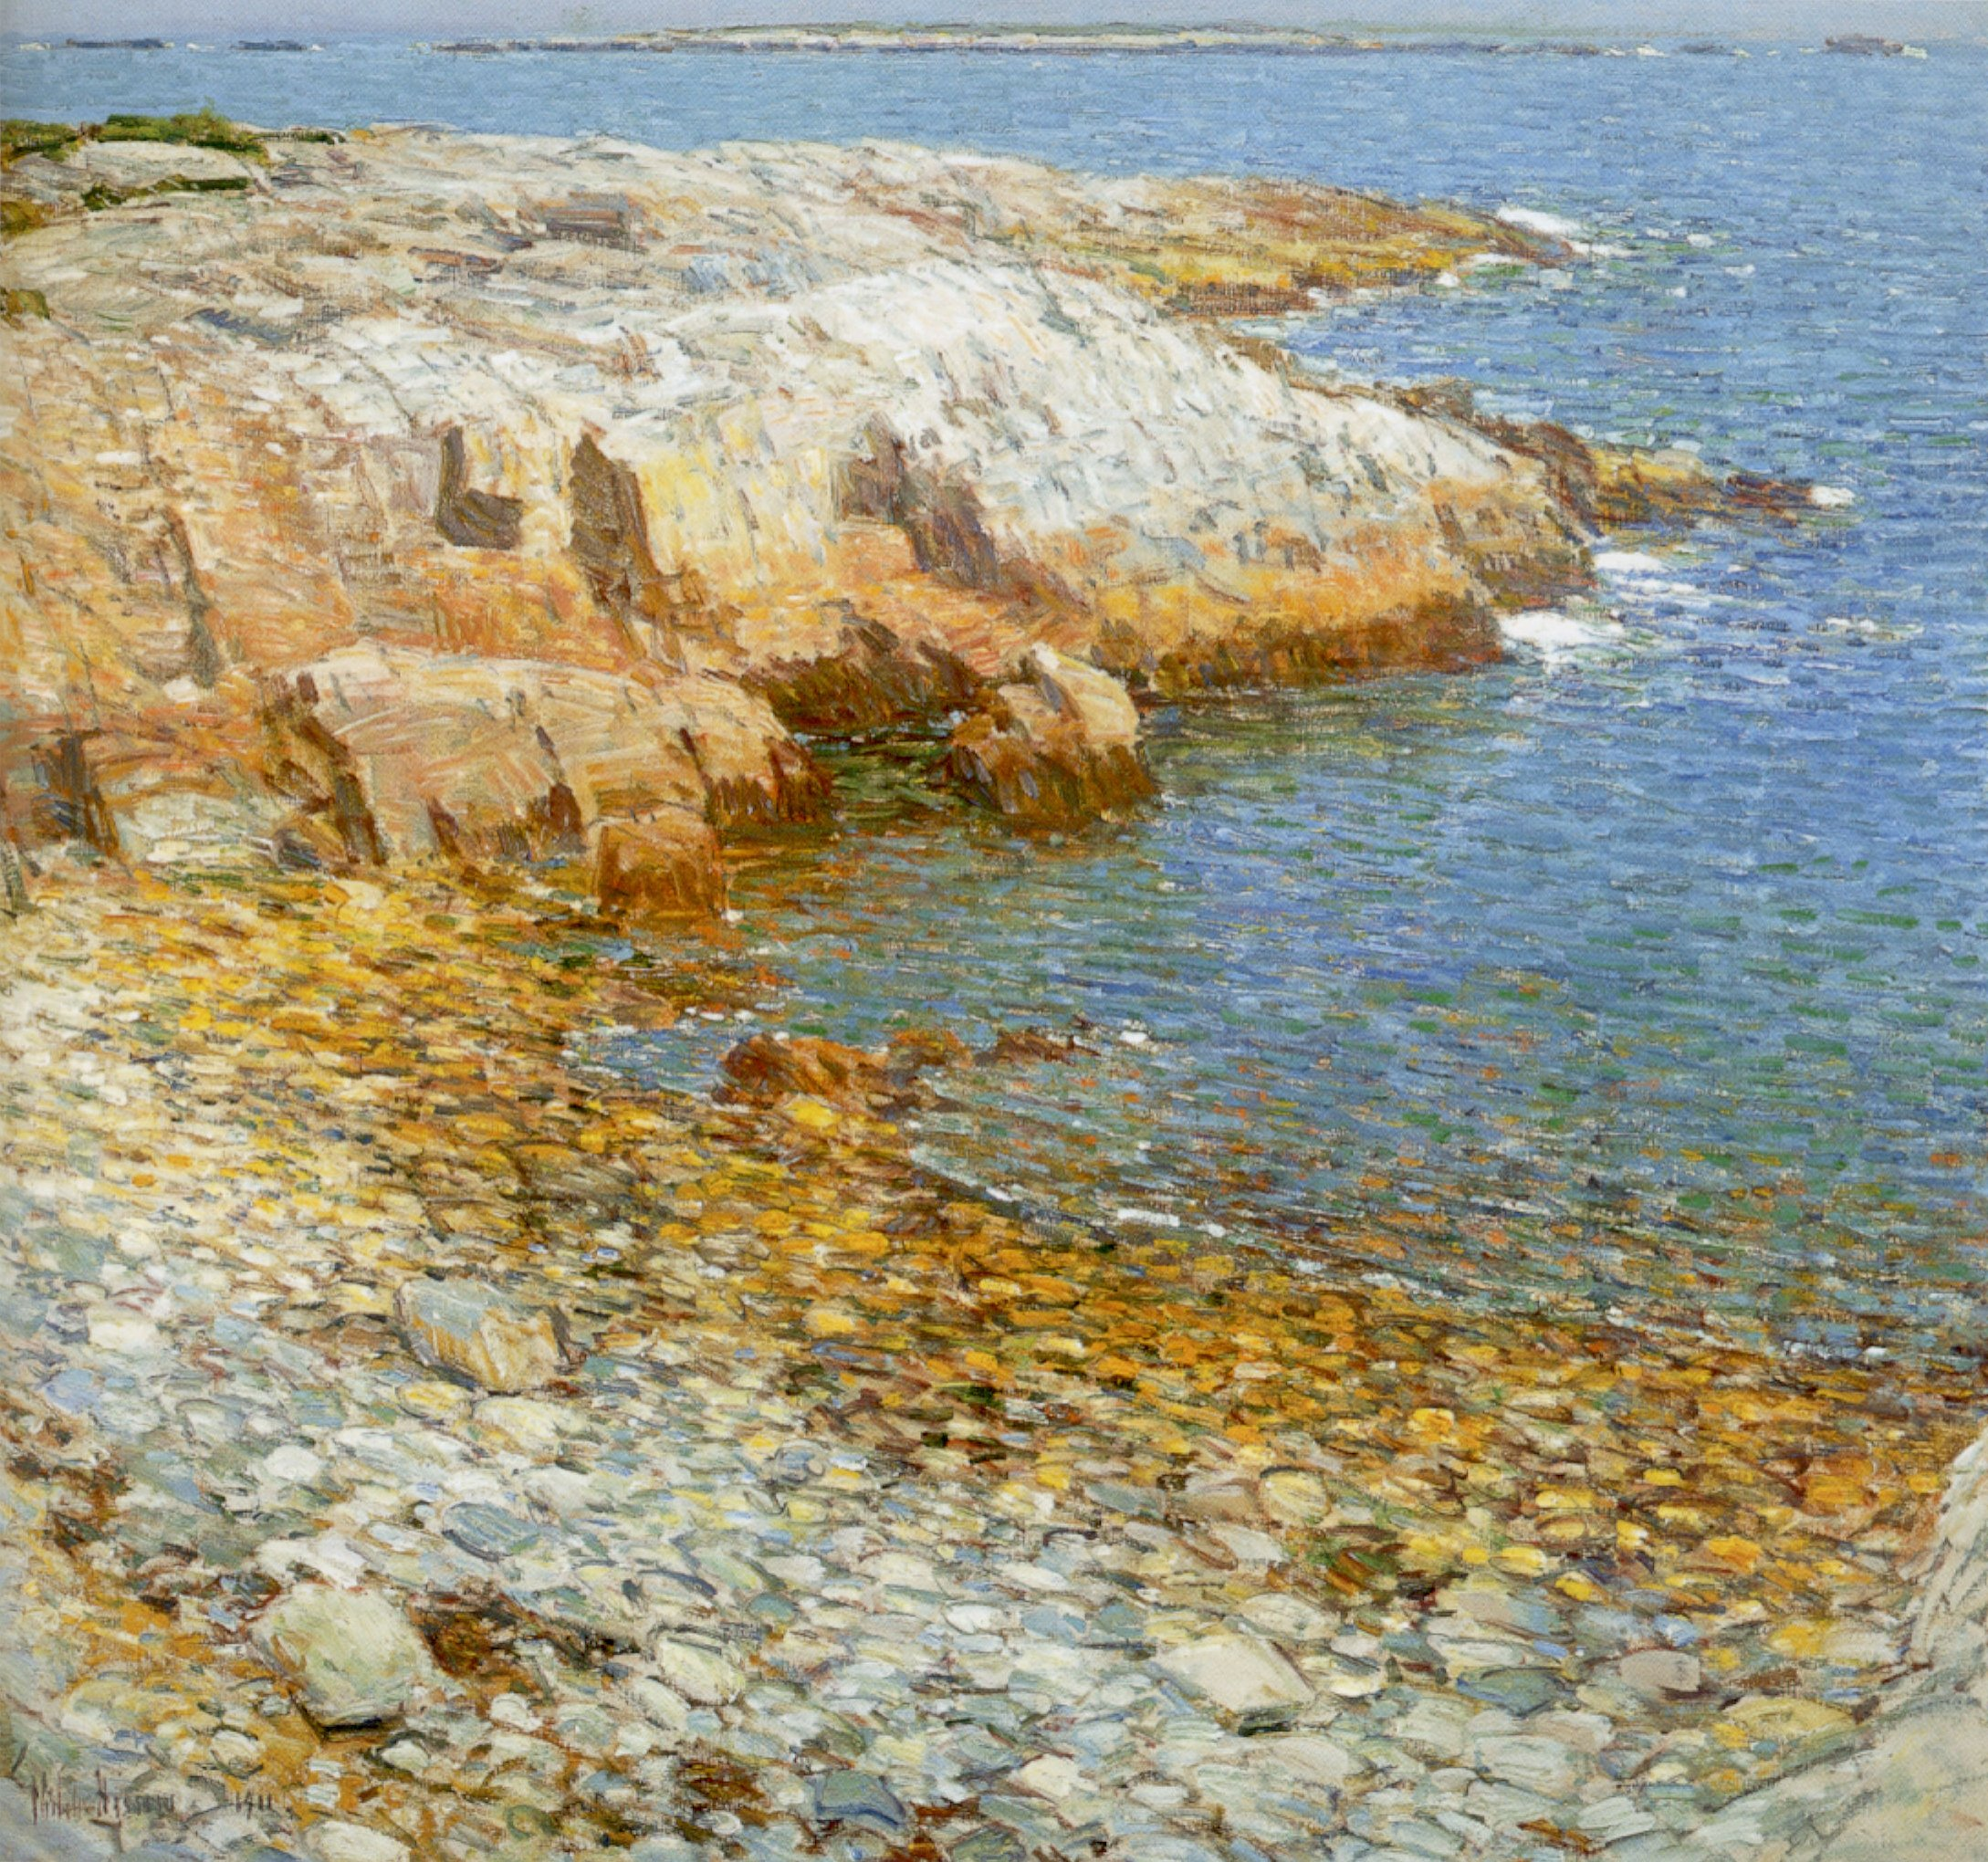 https://upload.wikimedia.org/wikipedia/commons/5/53/Hassam_-_%27Isles_of_Shoals%2C_Broad_Cove%27%2C_oil_on_canvas_painting_by_Childe_Hassam%2C_1911.jpg